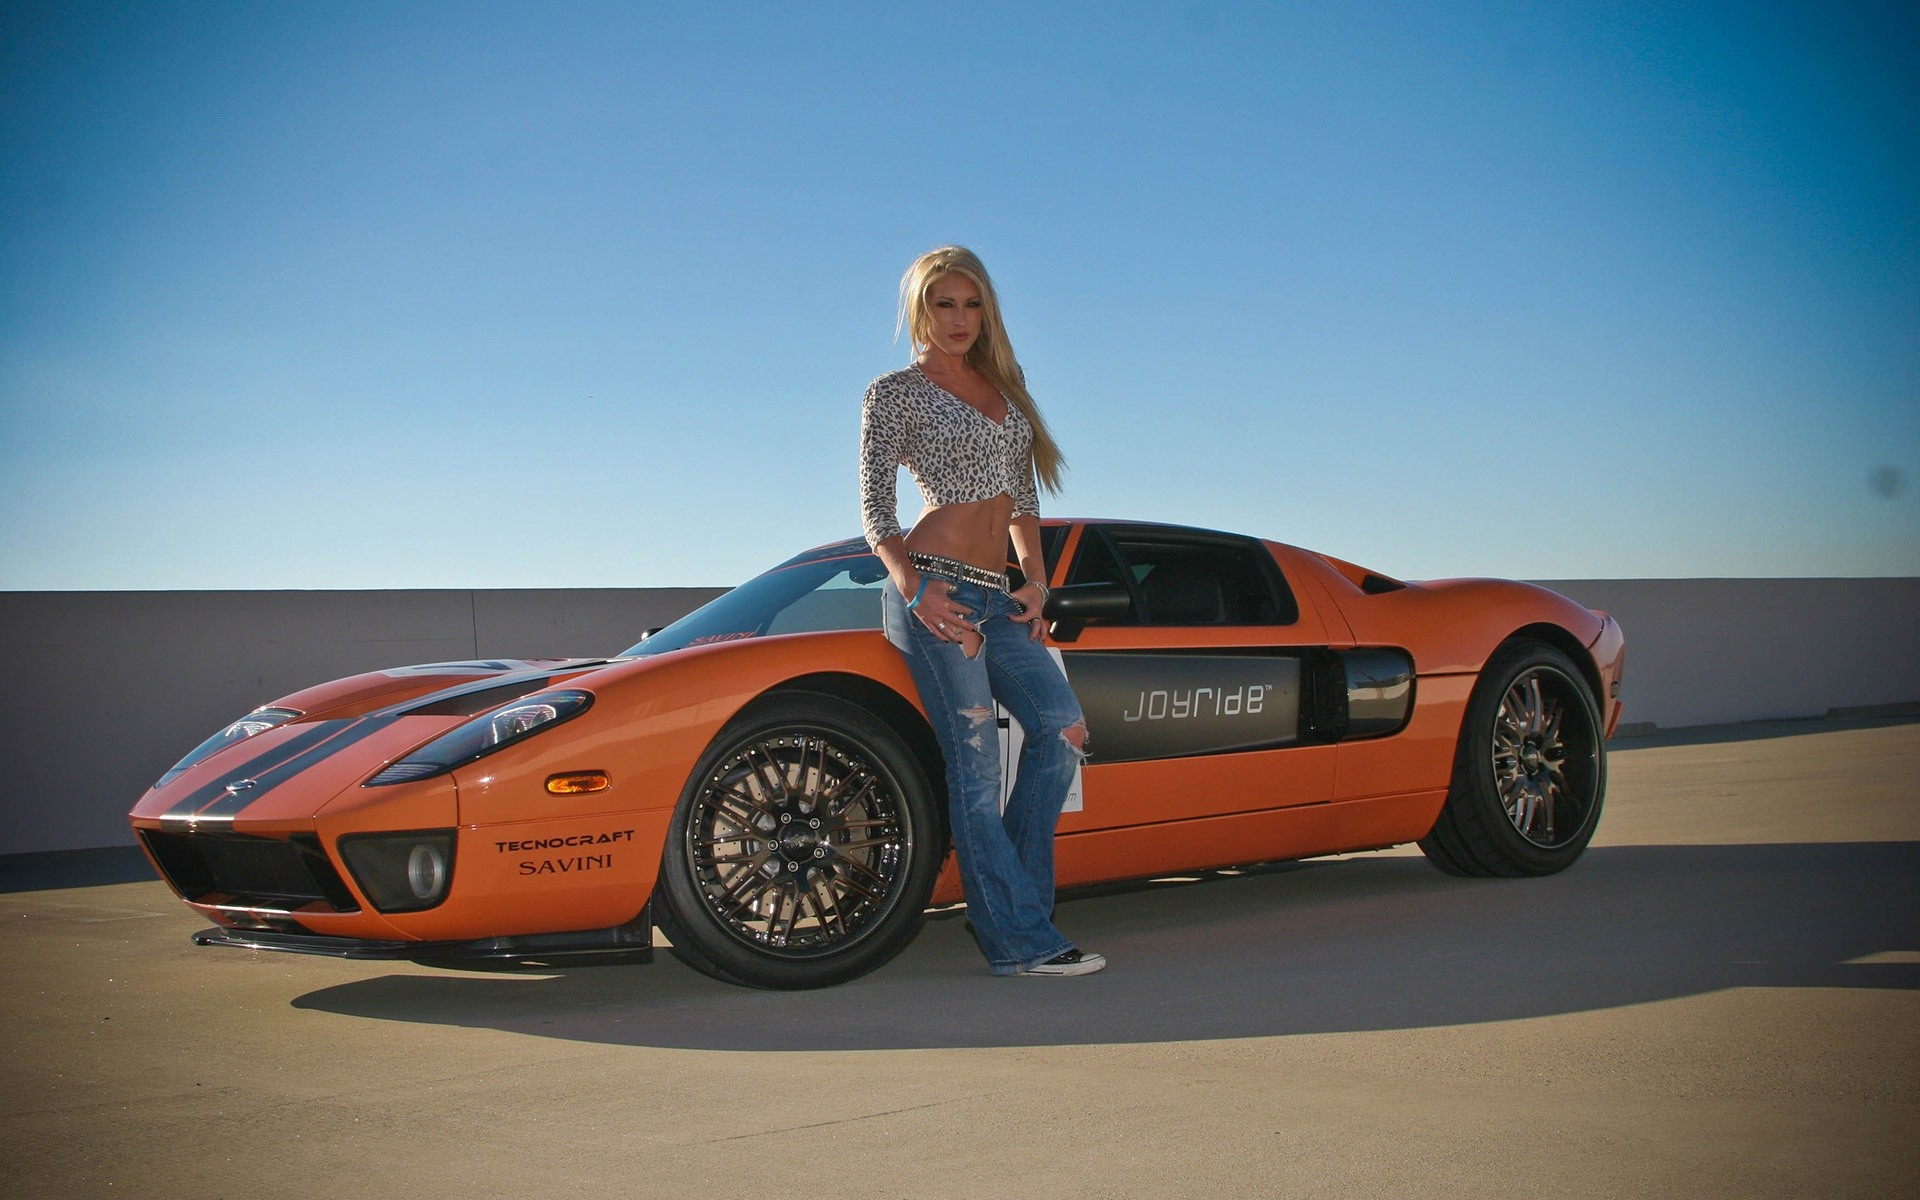 Wallpapers blondes women models Ford supercars girls with cars 1920x1200